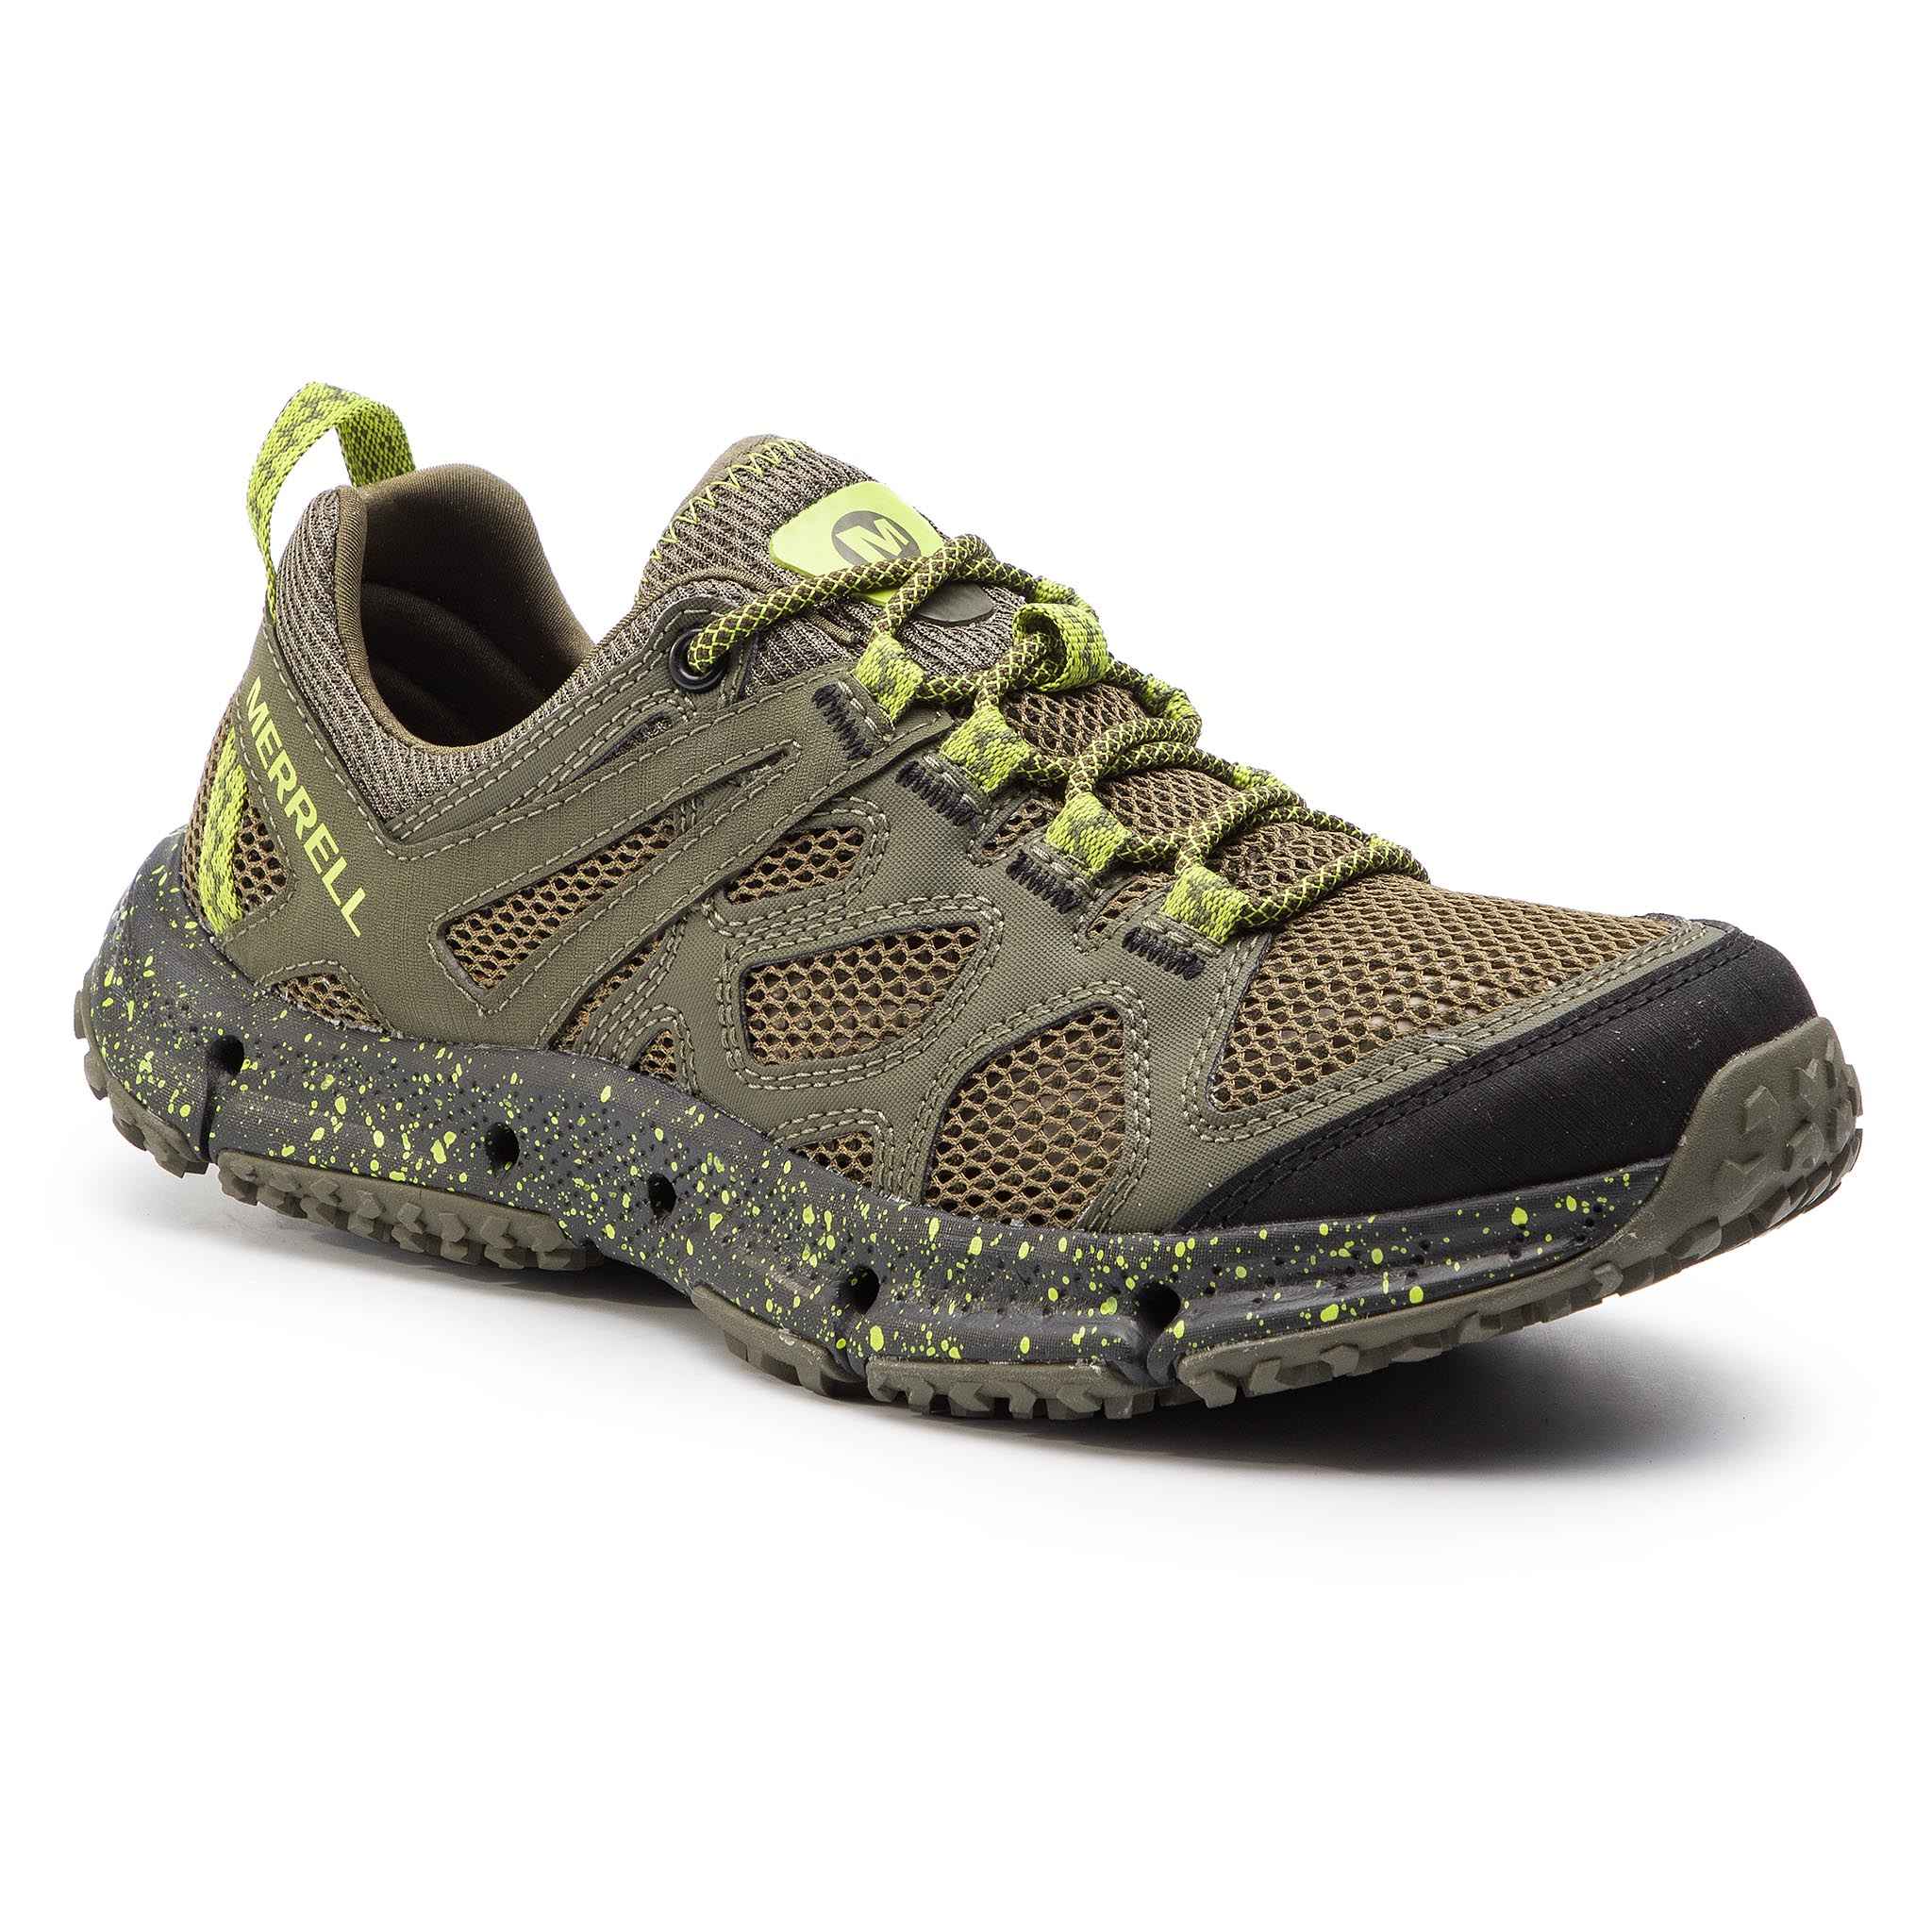 Trekkings Merrell - Hydrotrekker J50187 Dusty Olive/Lime imagine epantofi.ro 2021